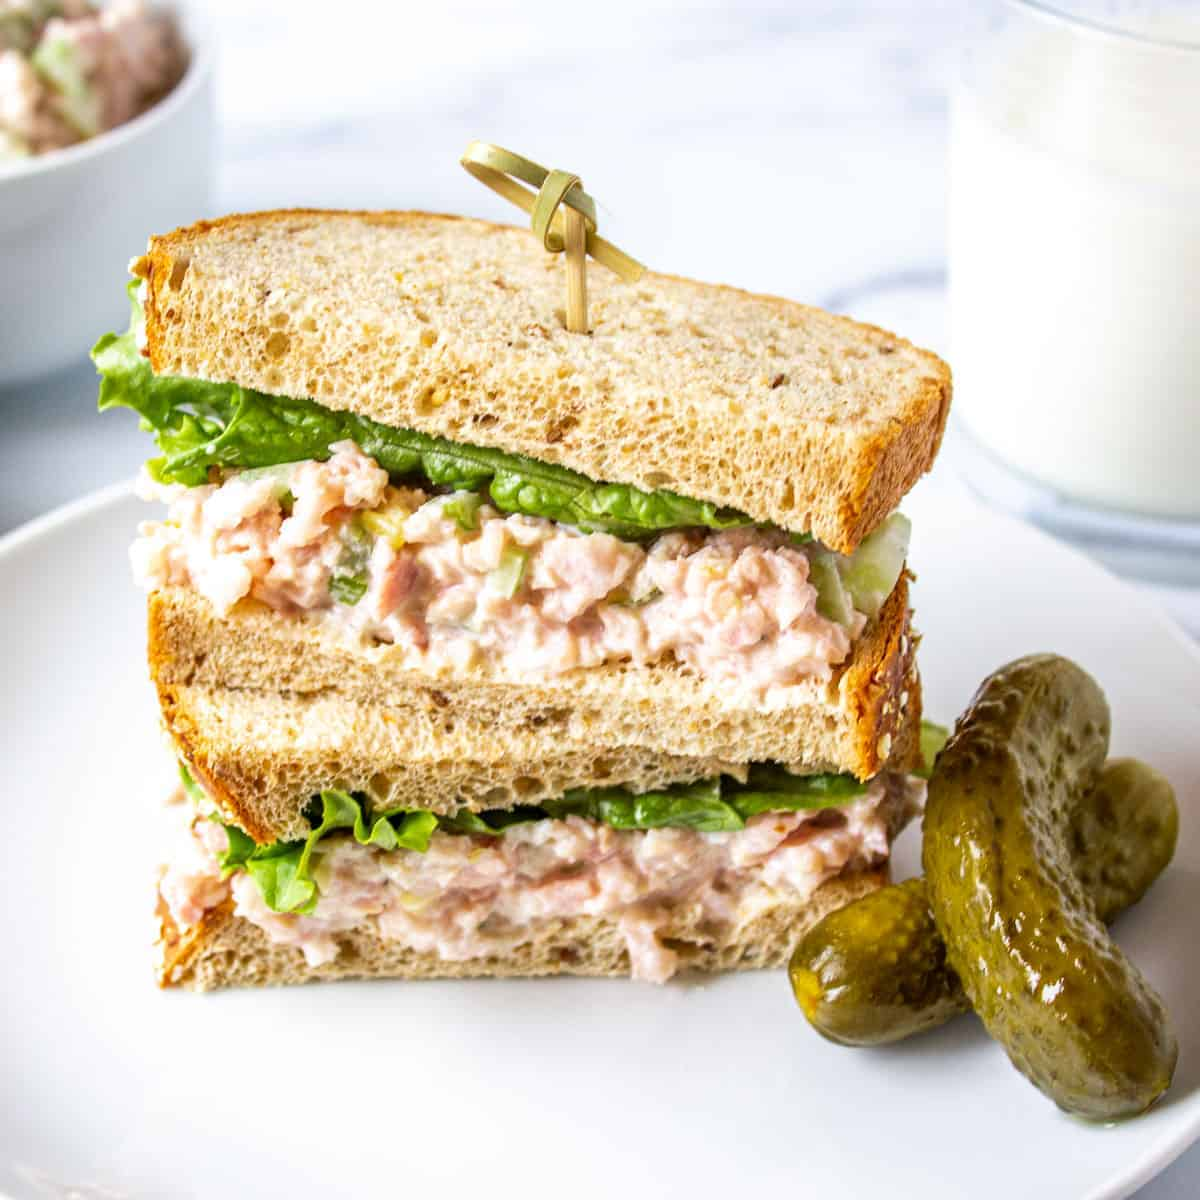 A stacked sandwich filled with deviled ham and lettuce.